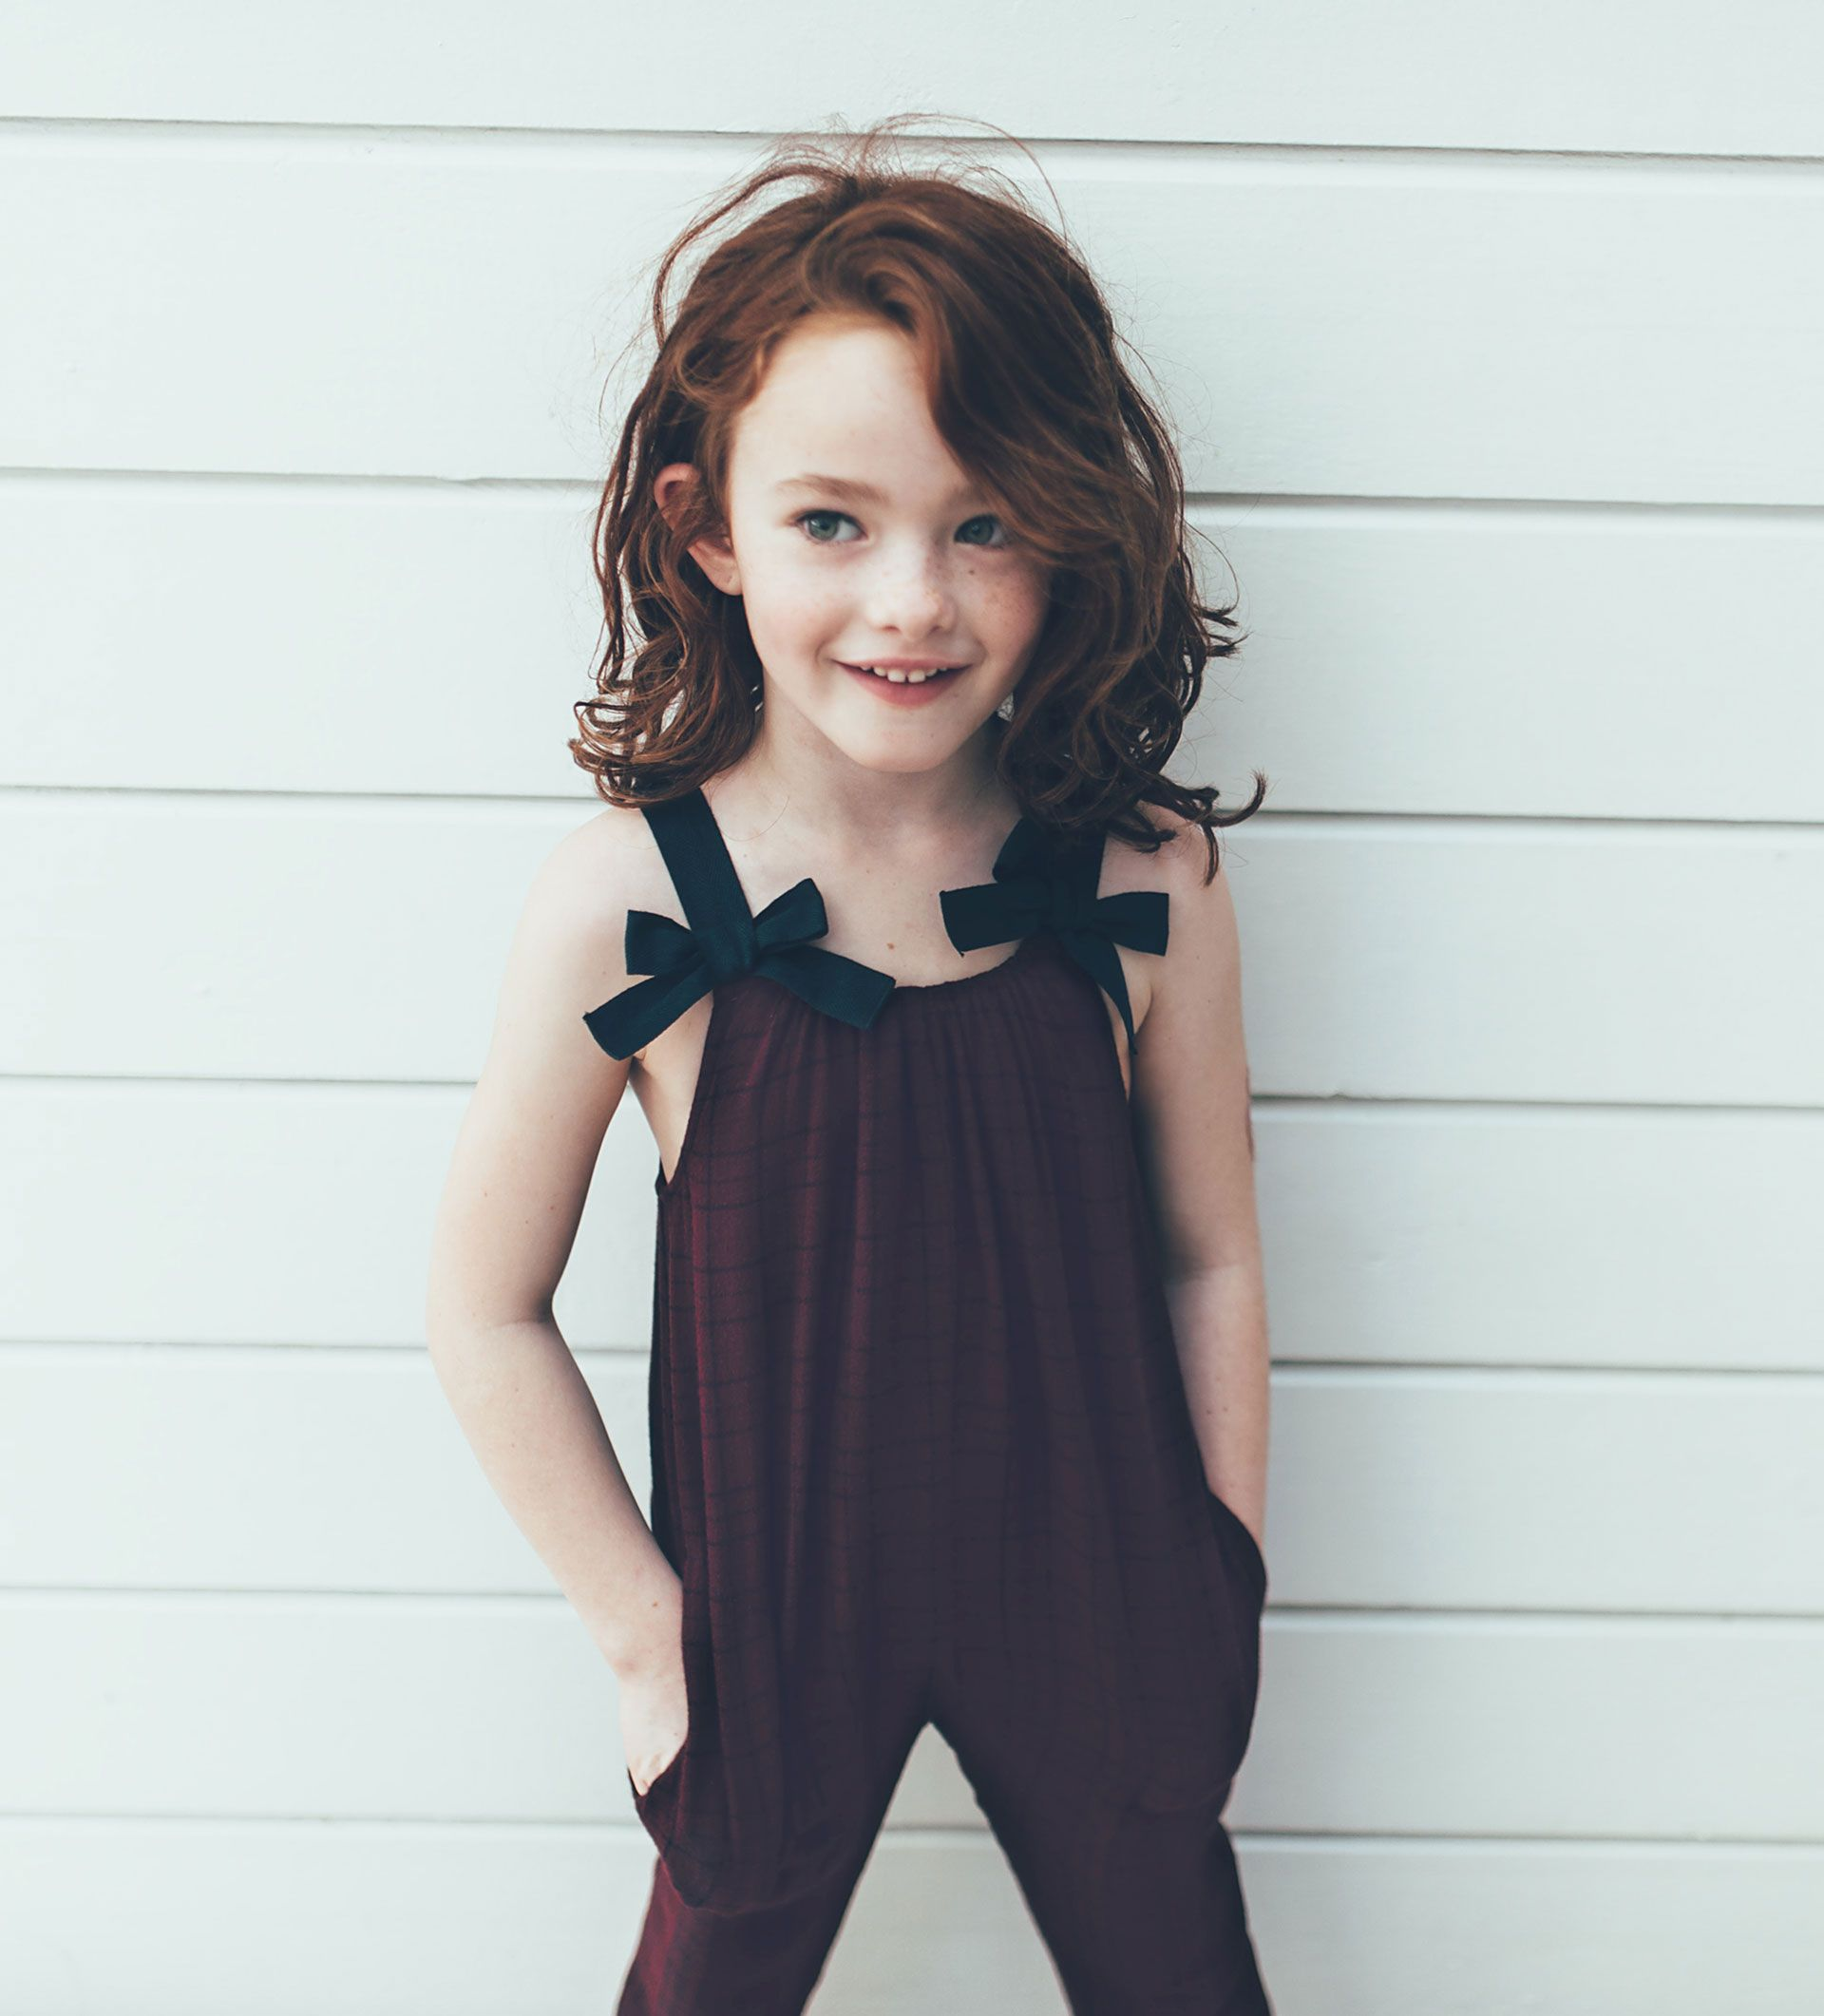 f582bbce14 CHECKED JUMPSUIT WITH BOWS - DRESSES AND JUMPSUITS-GIRL | 4-14 years ...